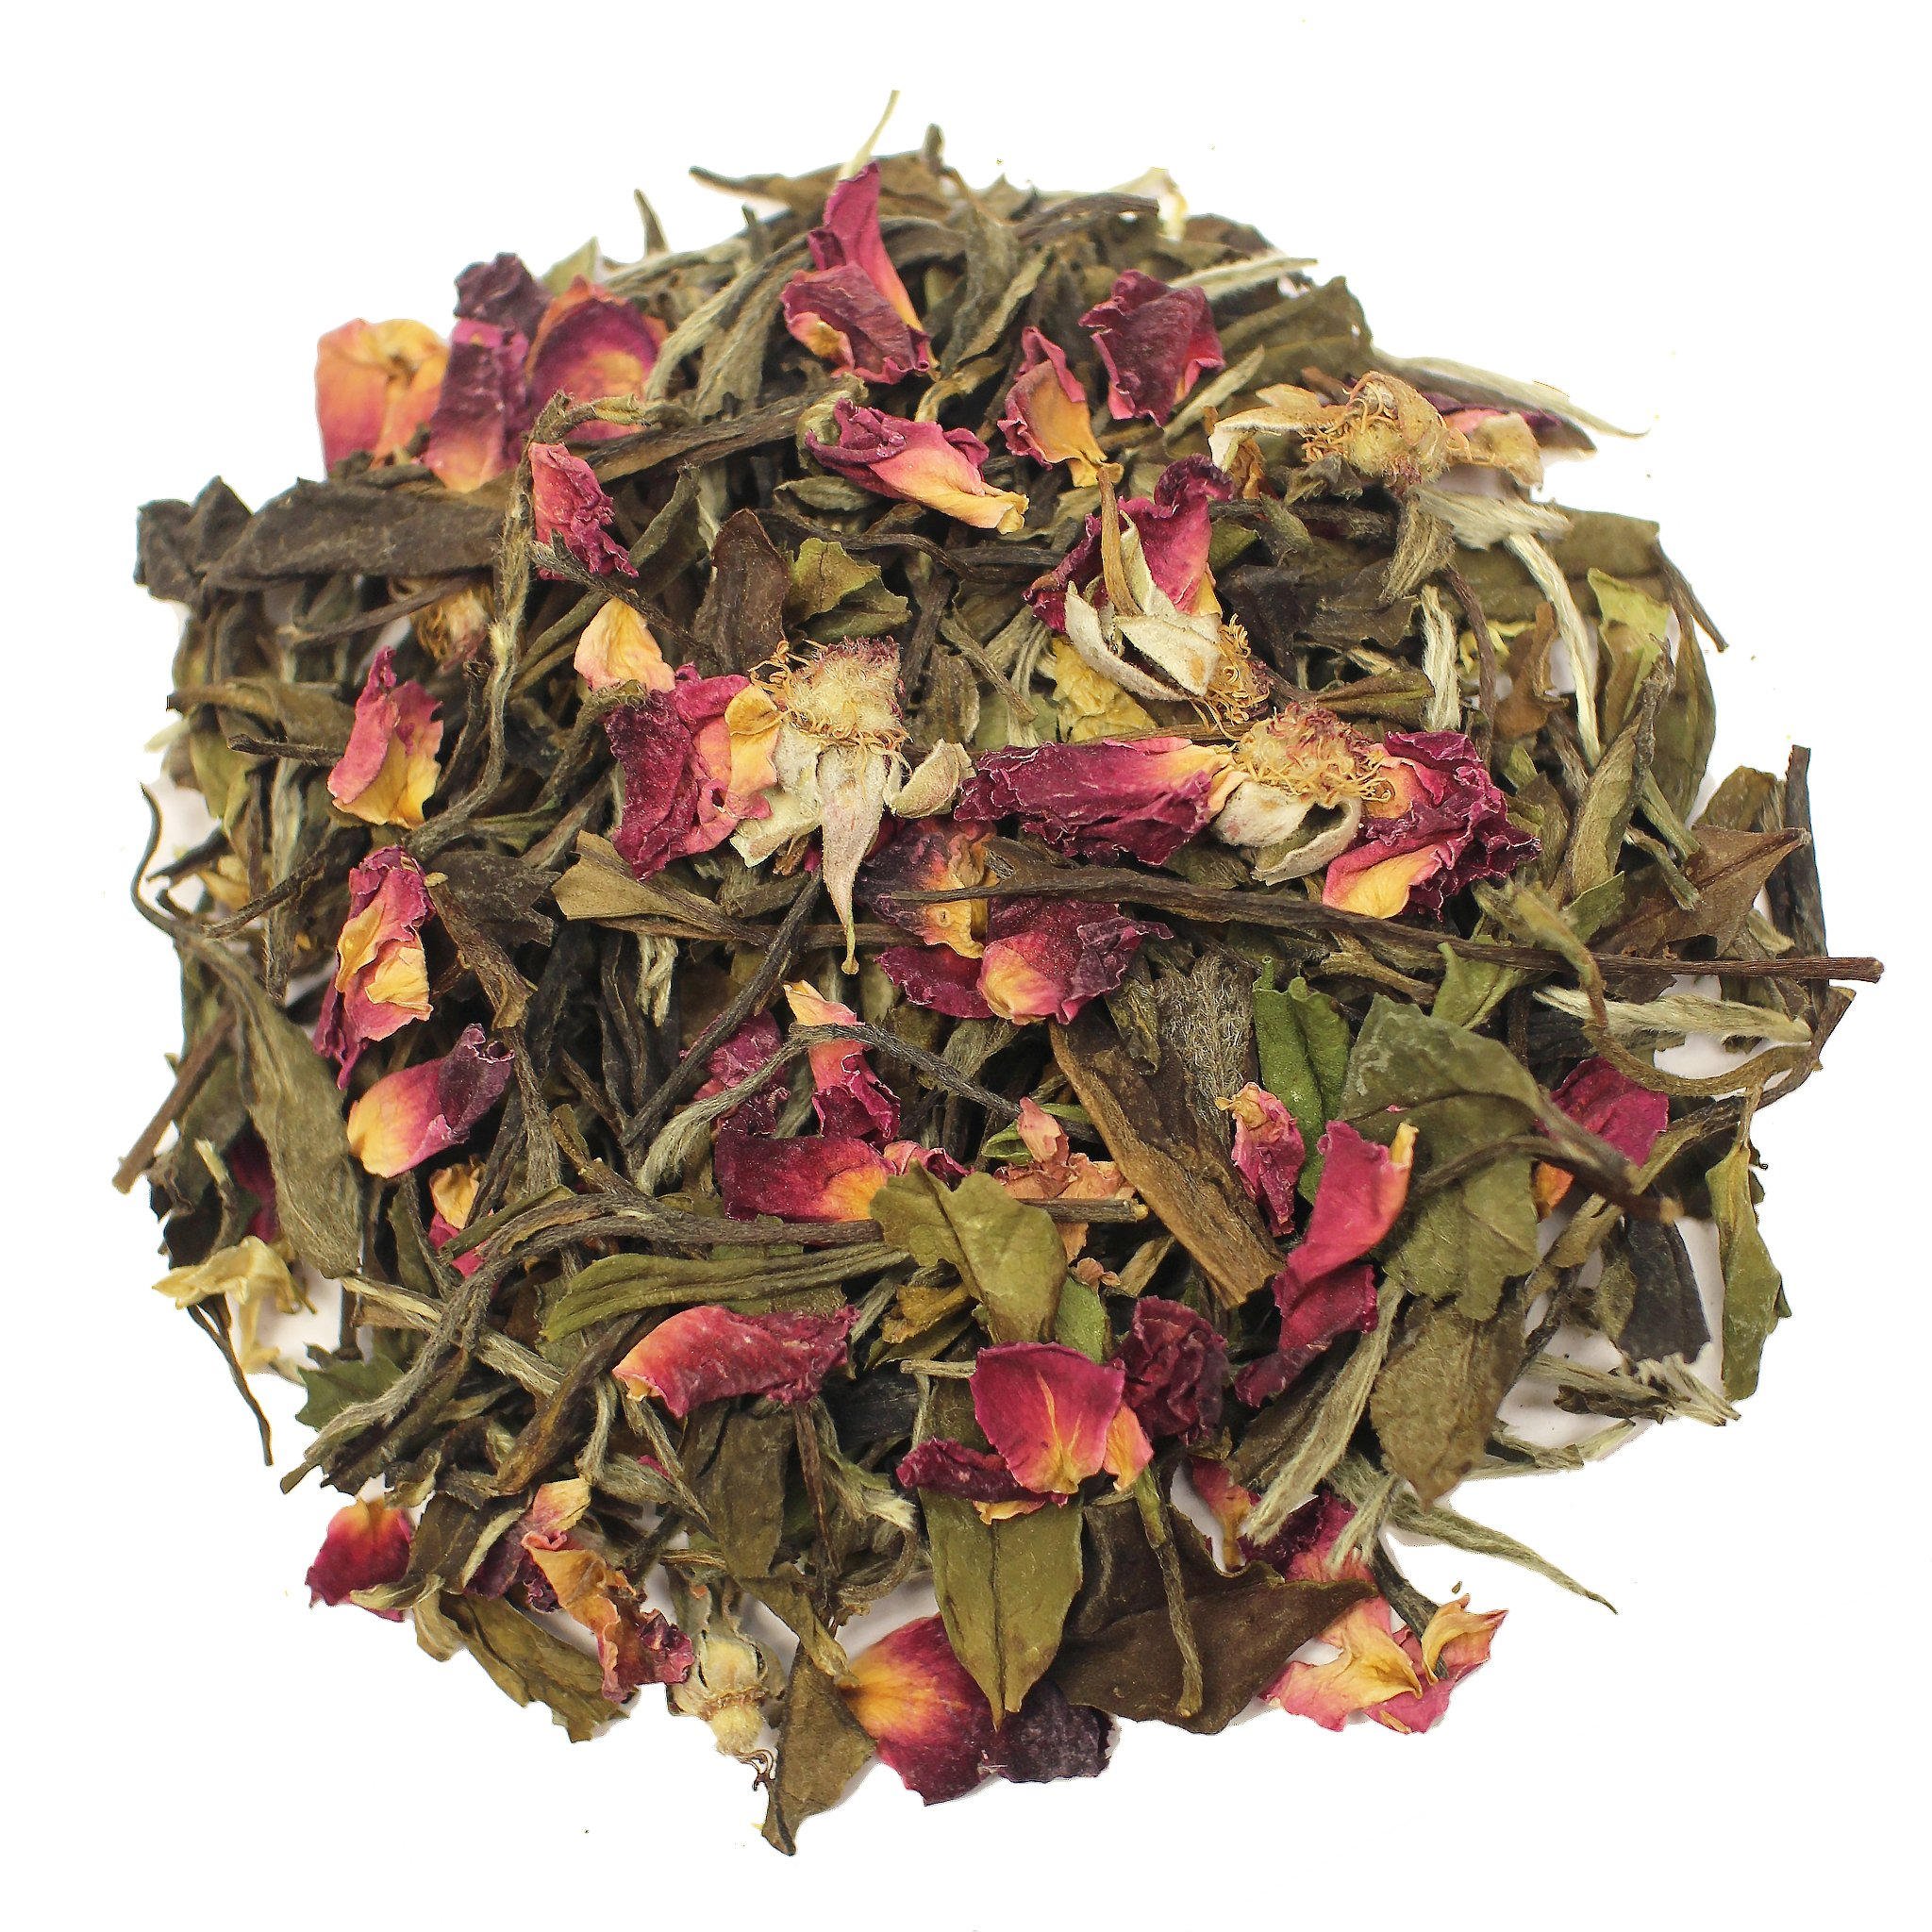 The Tea Farm - Rose White Floral Tea - Loose Leaf White Tea (8 Ounce Bag) by The Tea Farm